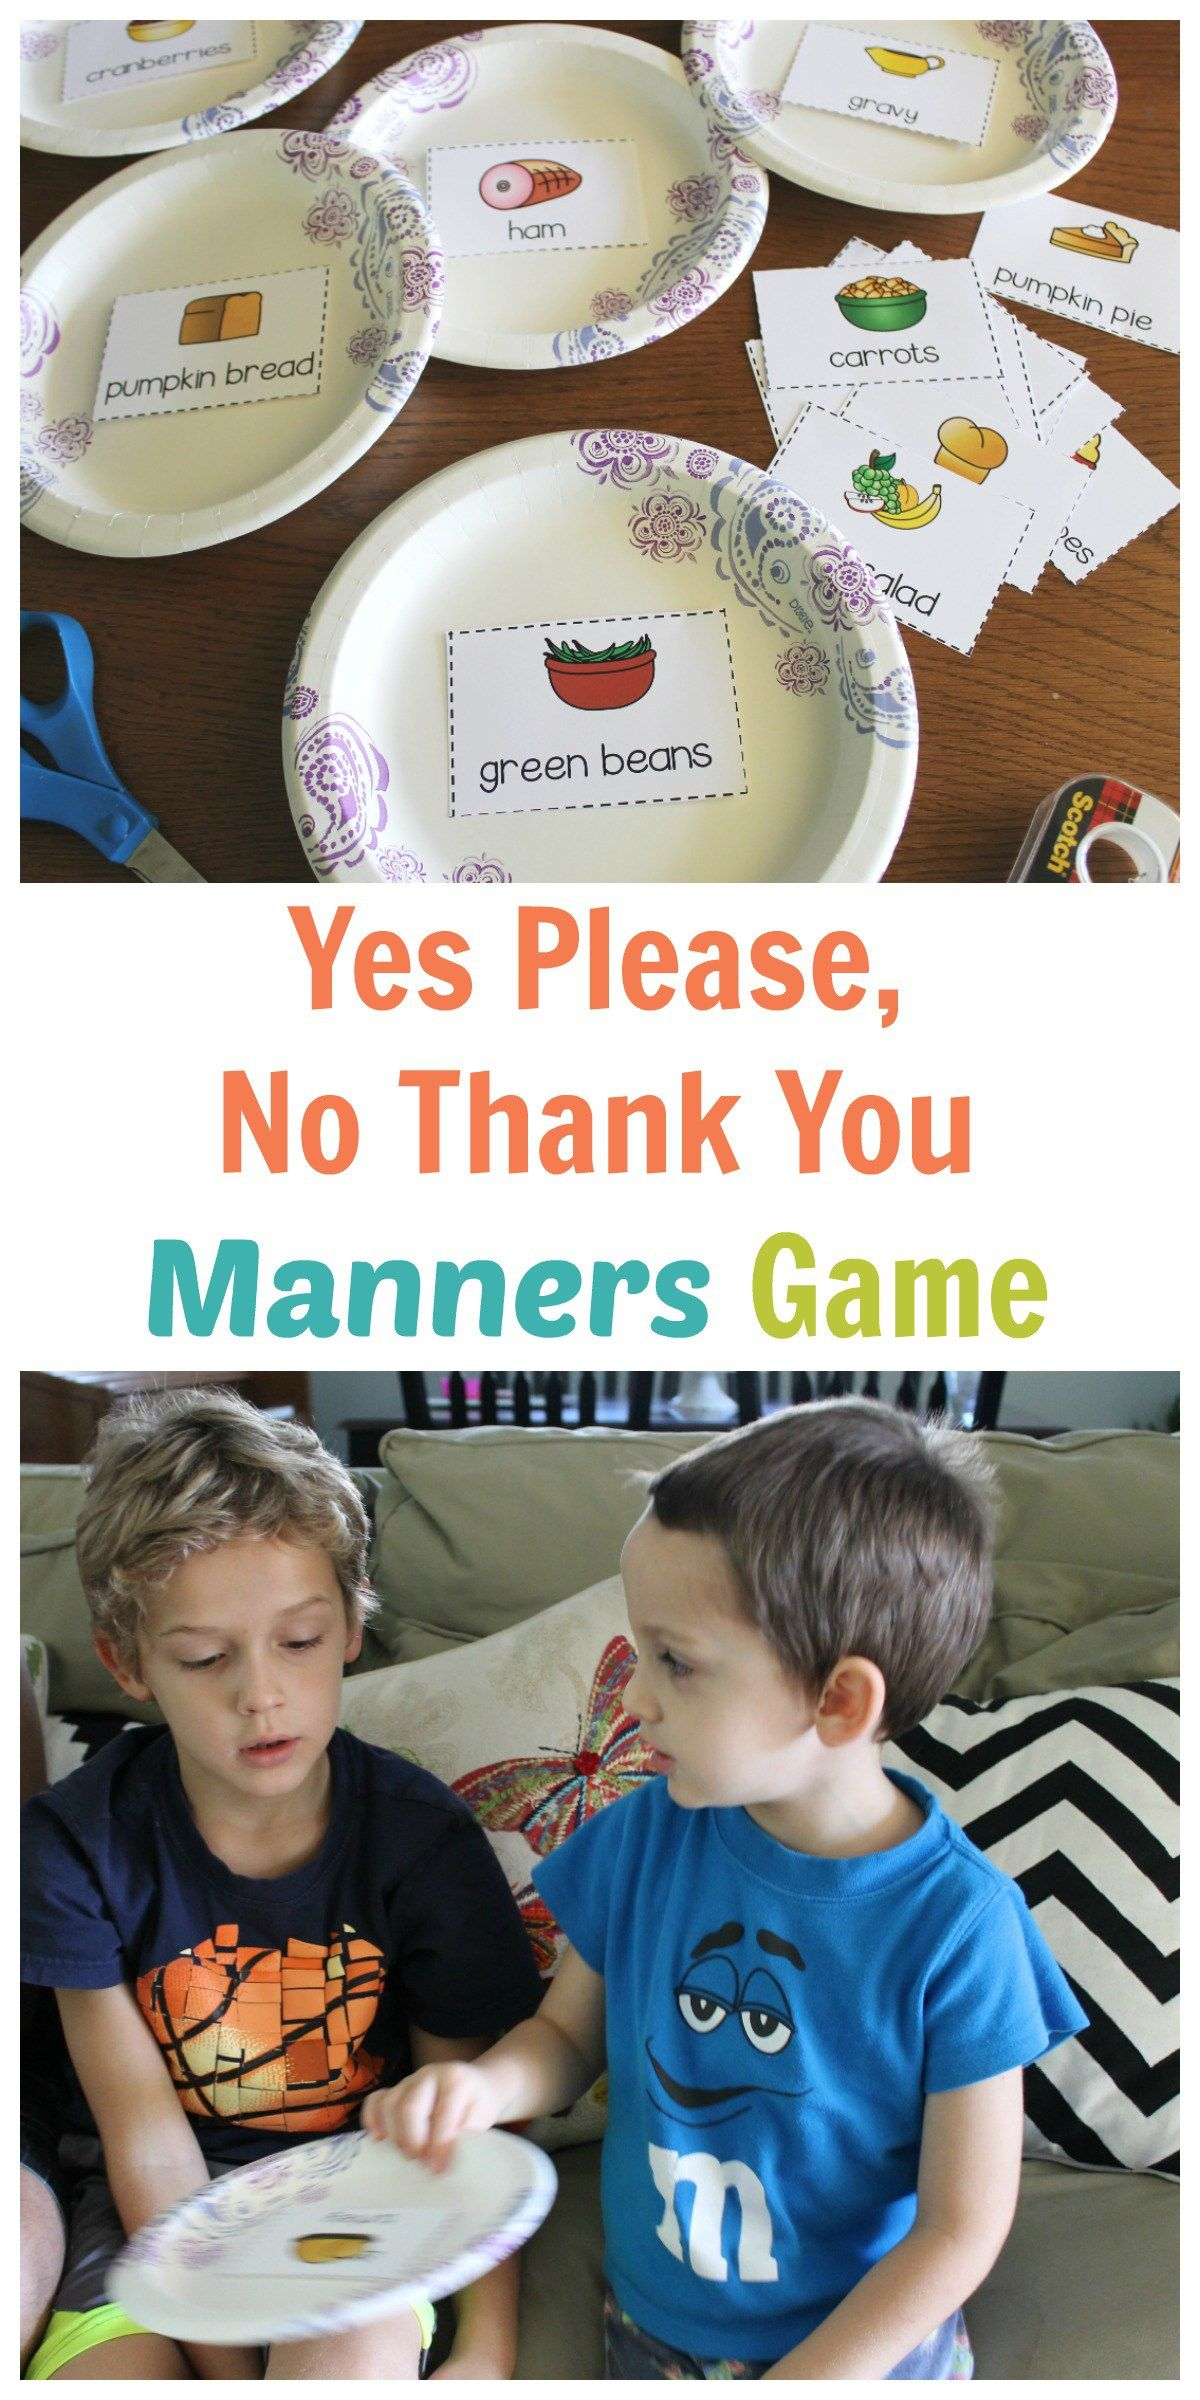 Yes Please No Thank You Holiday Meal Manners Game